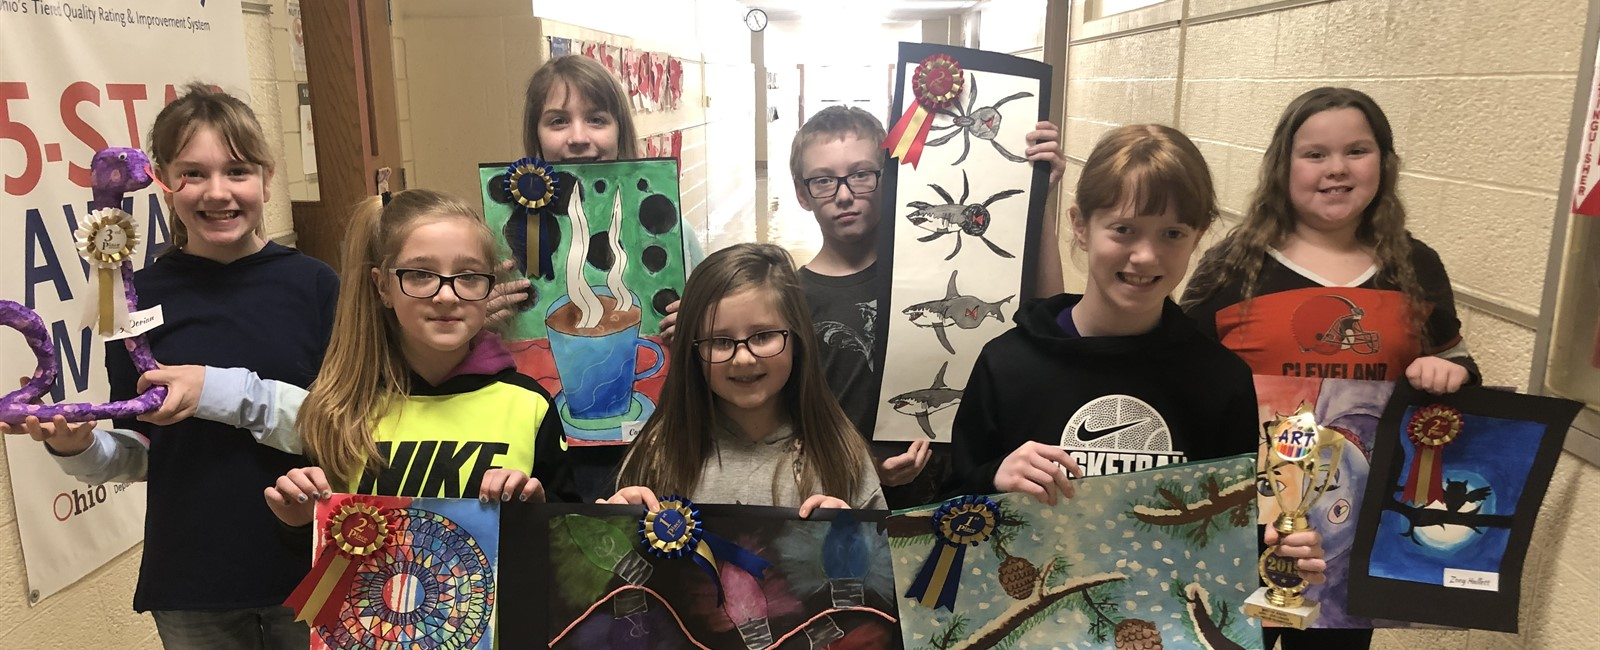 These B.L. Miller Elementary 4-6 students won awards for the school's art show on Thursday, February 14, 2019.